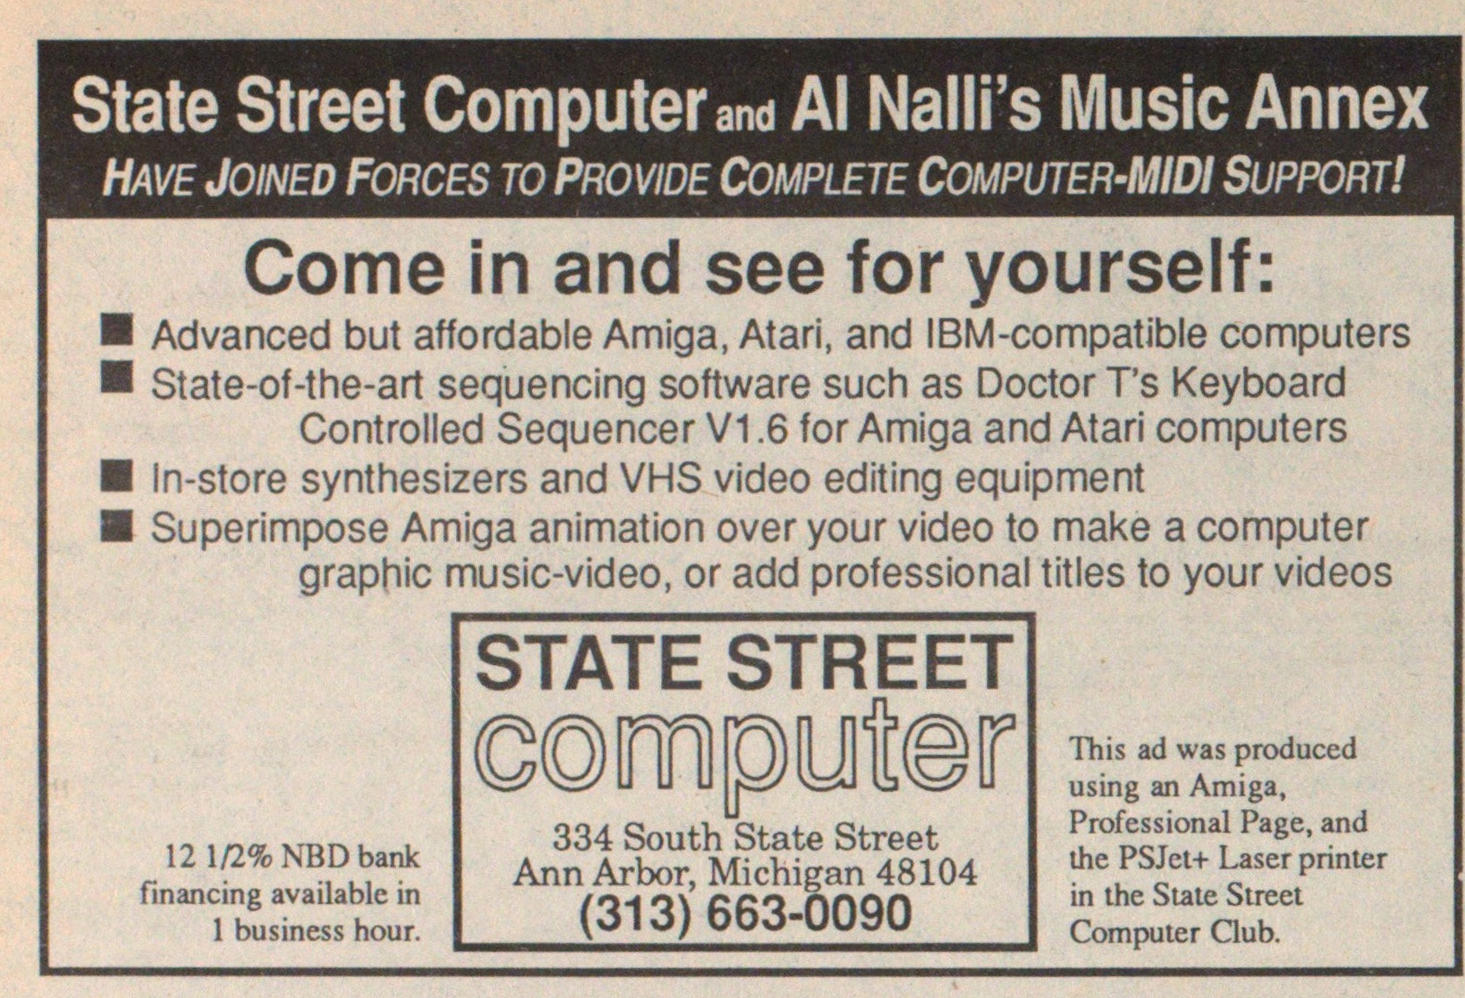 State Street Computer image